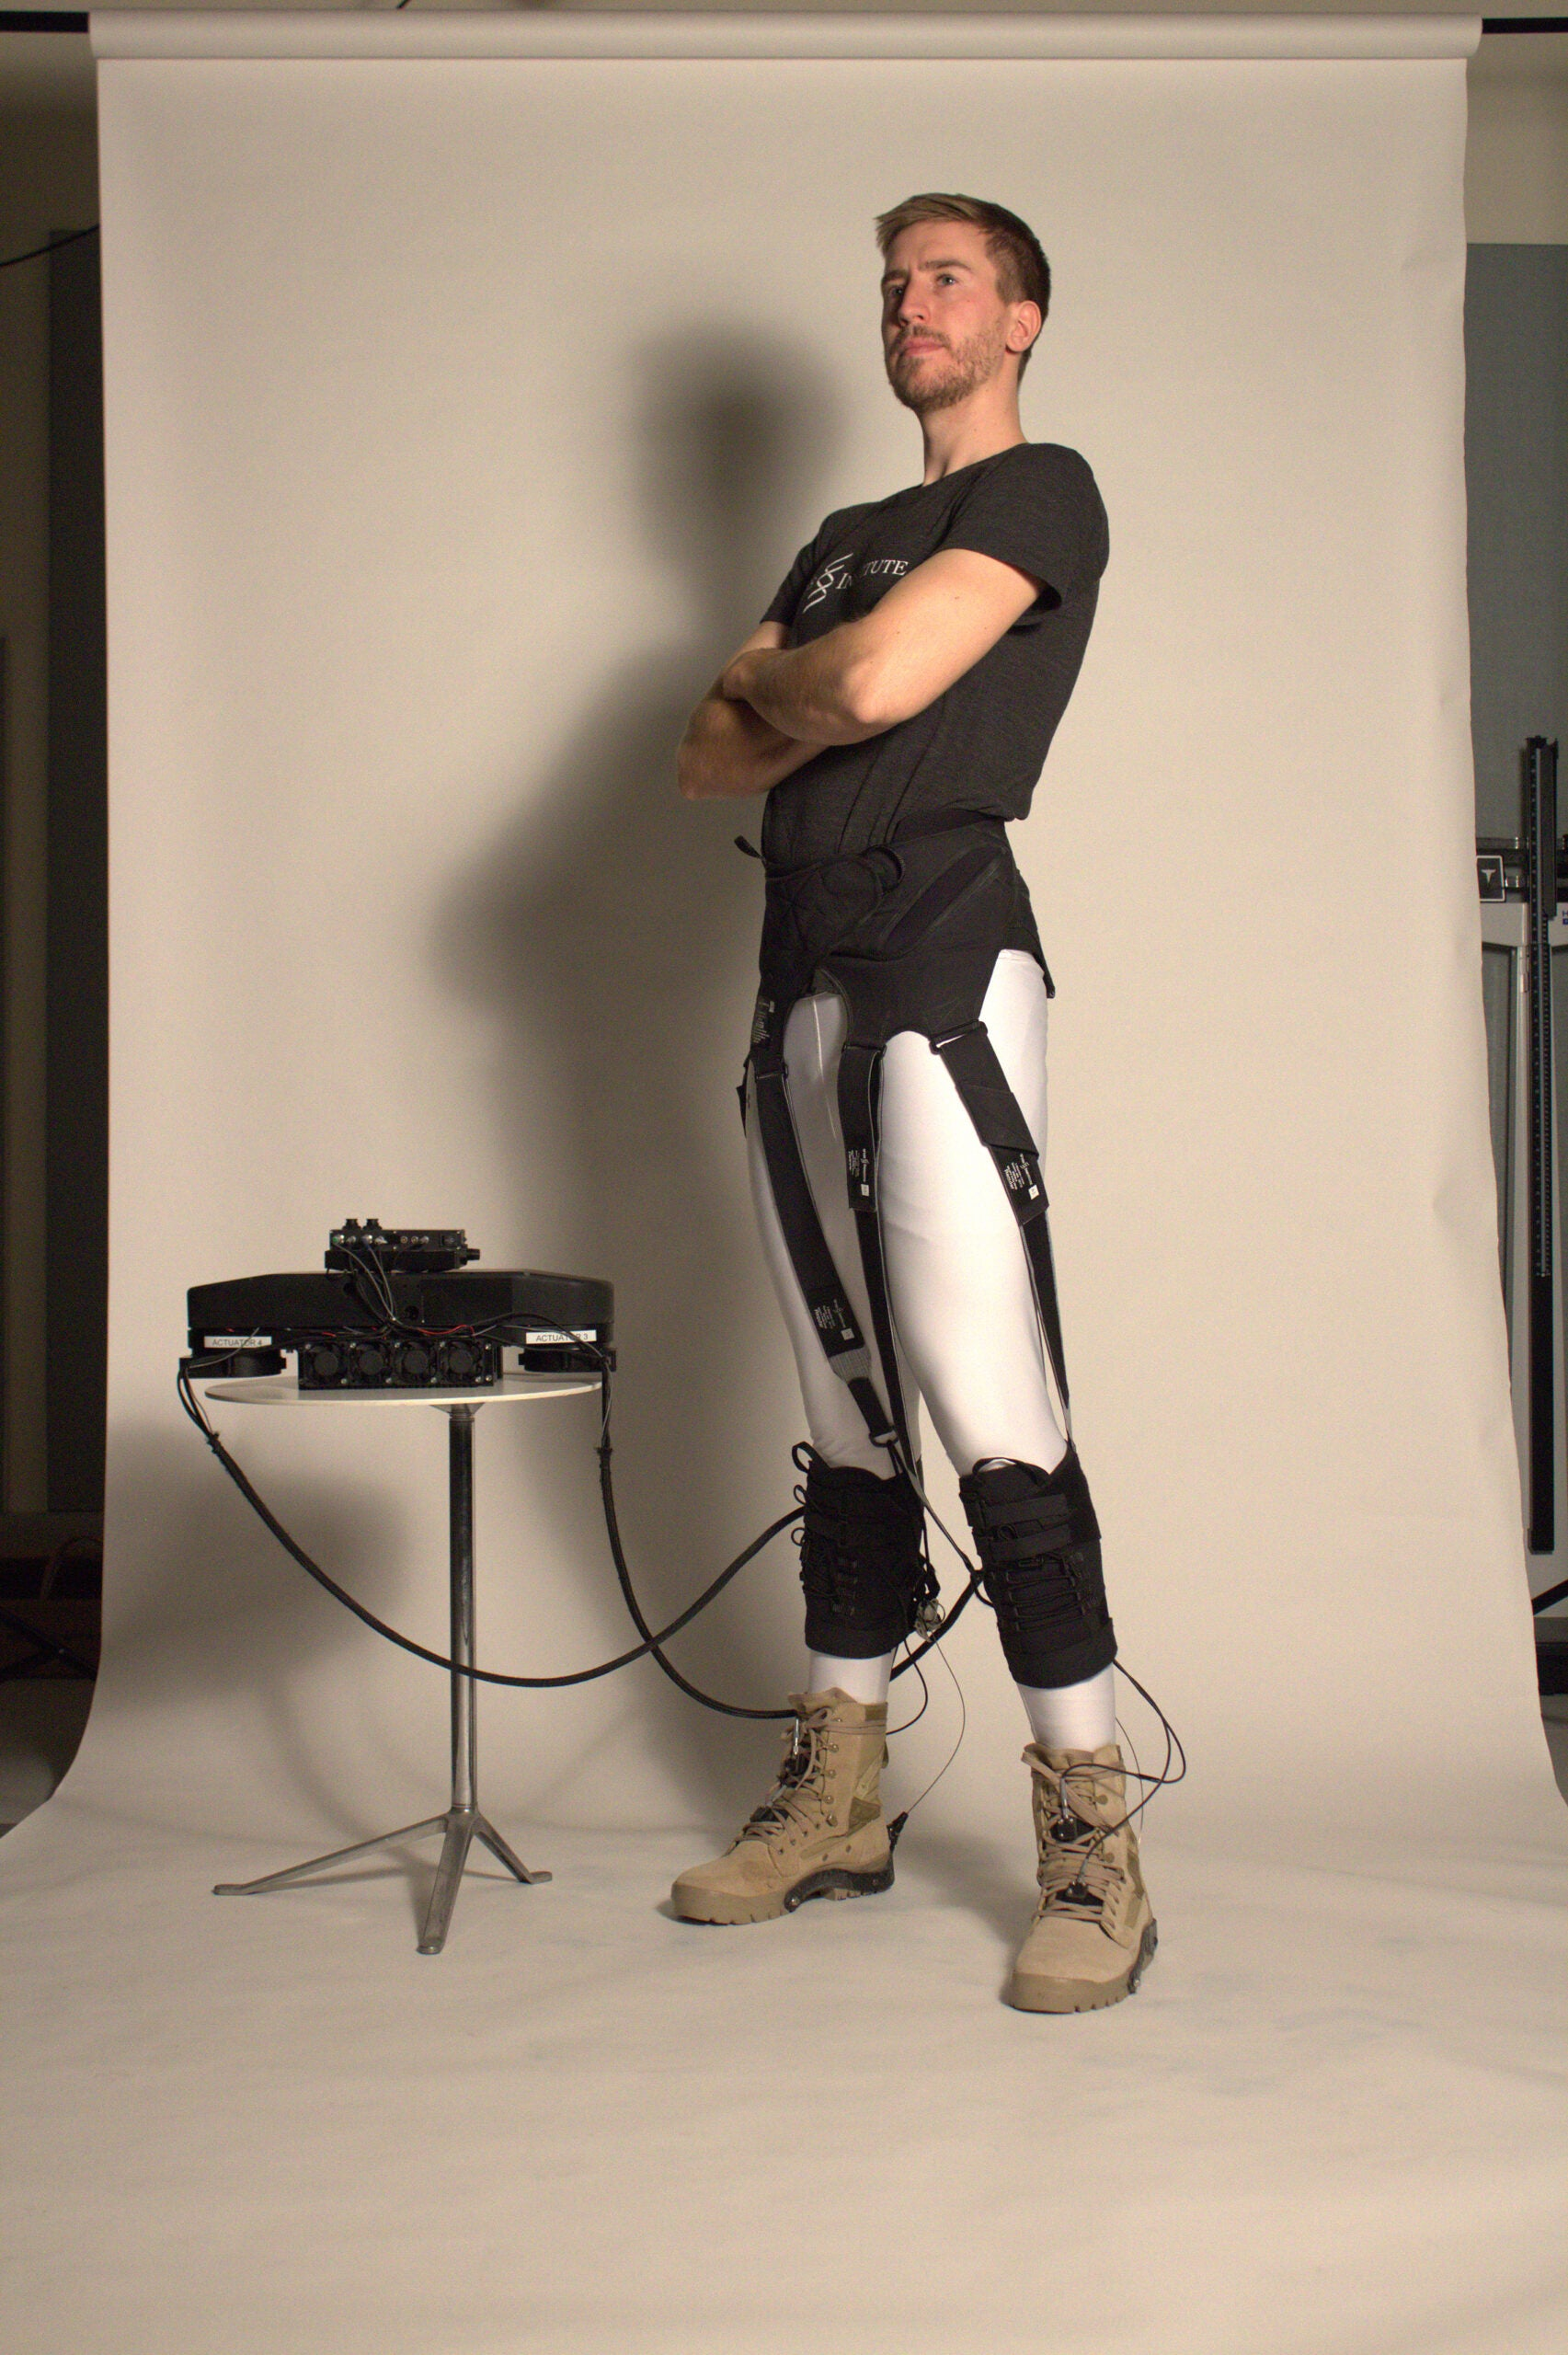 This soft-shelled exosuit might put Iron Man's duds to shame